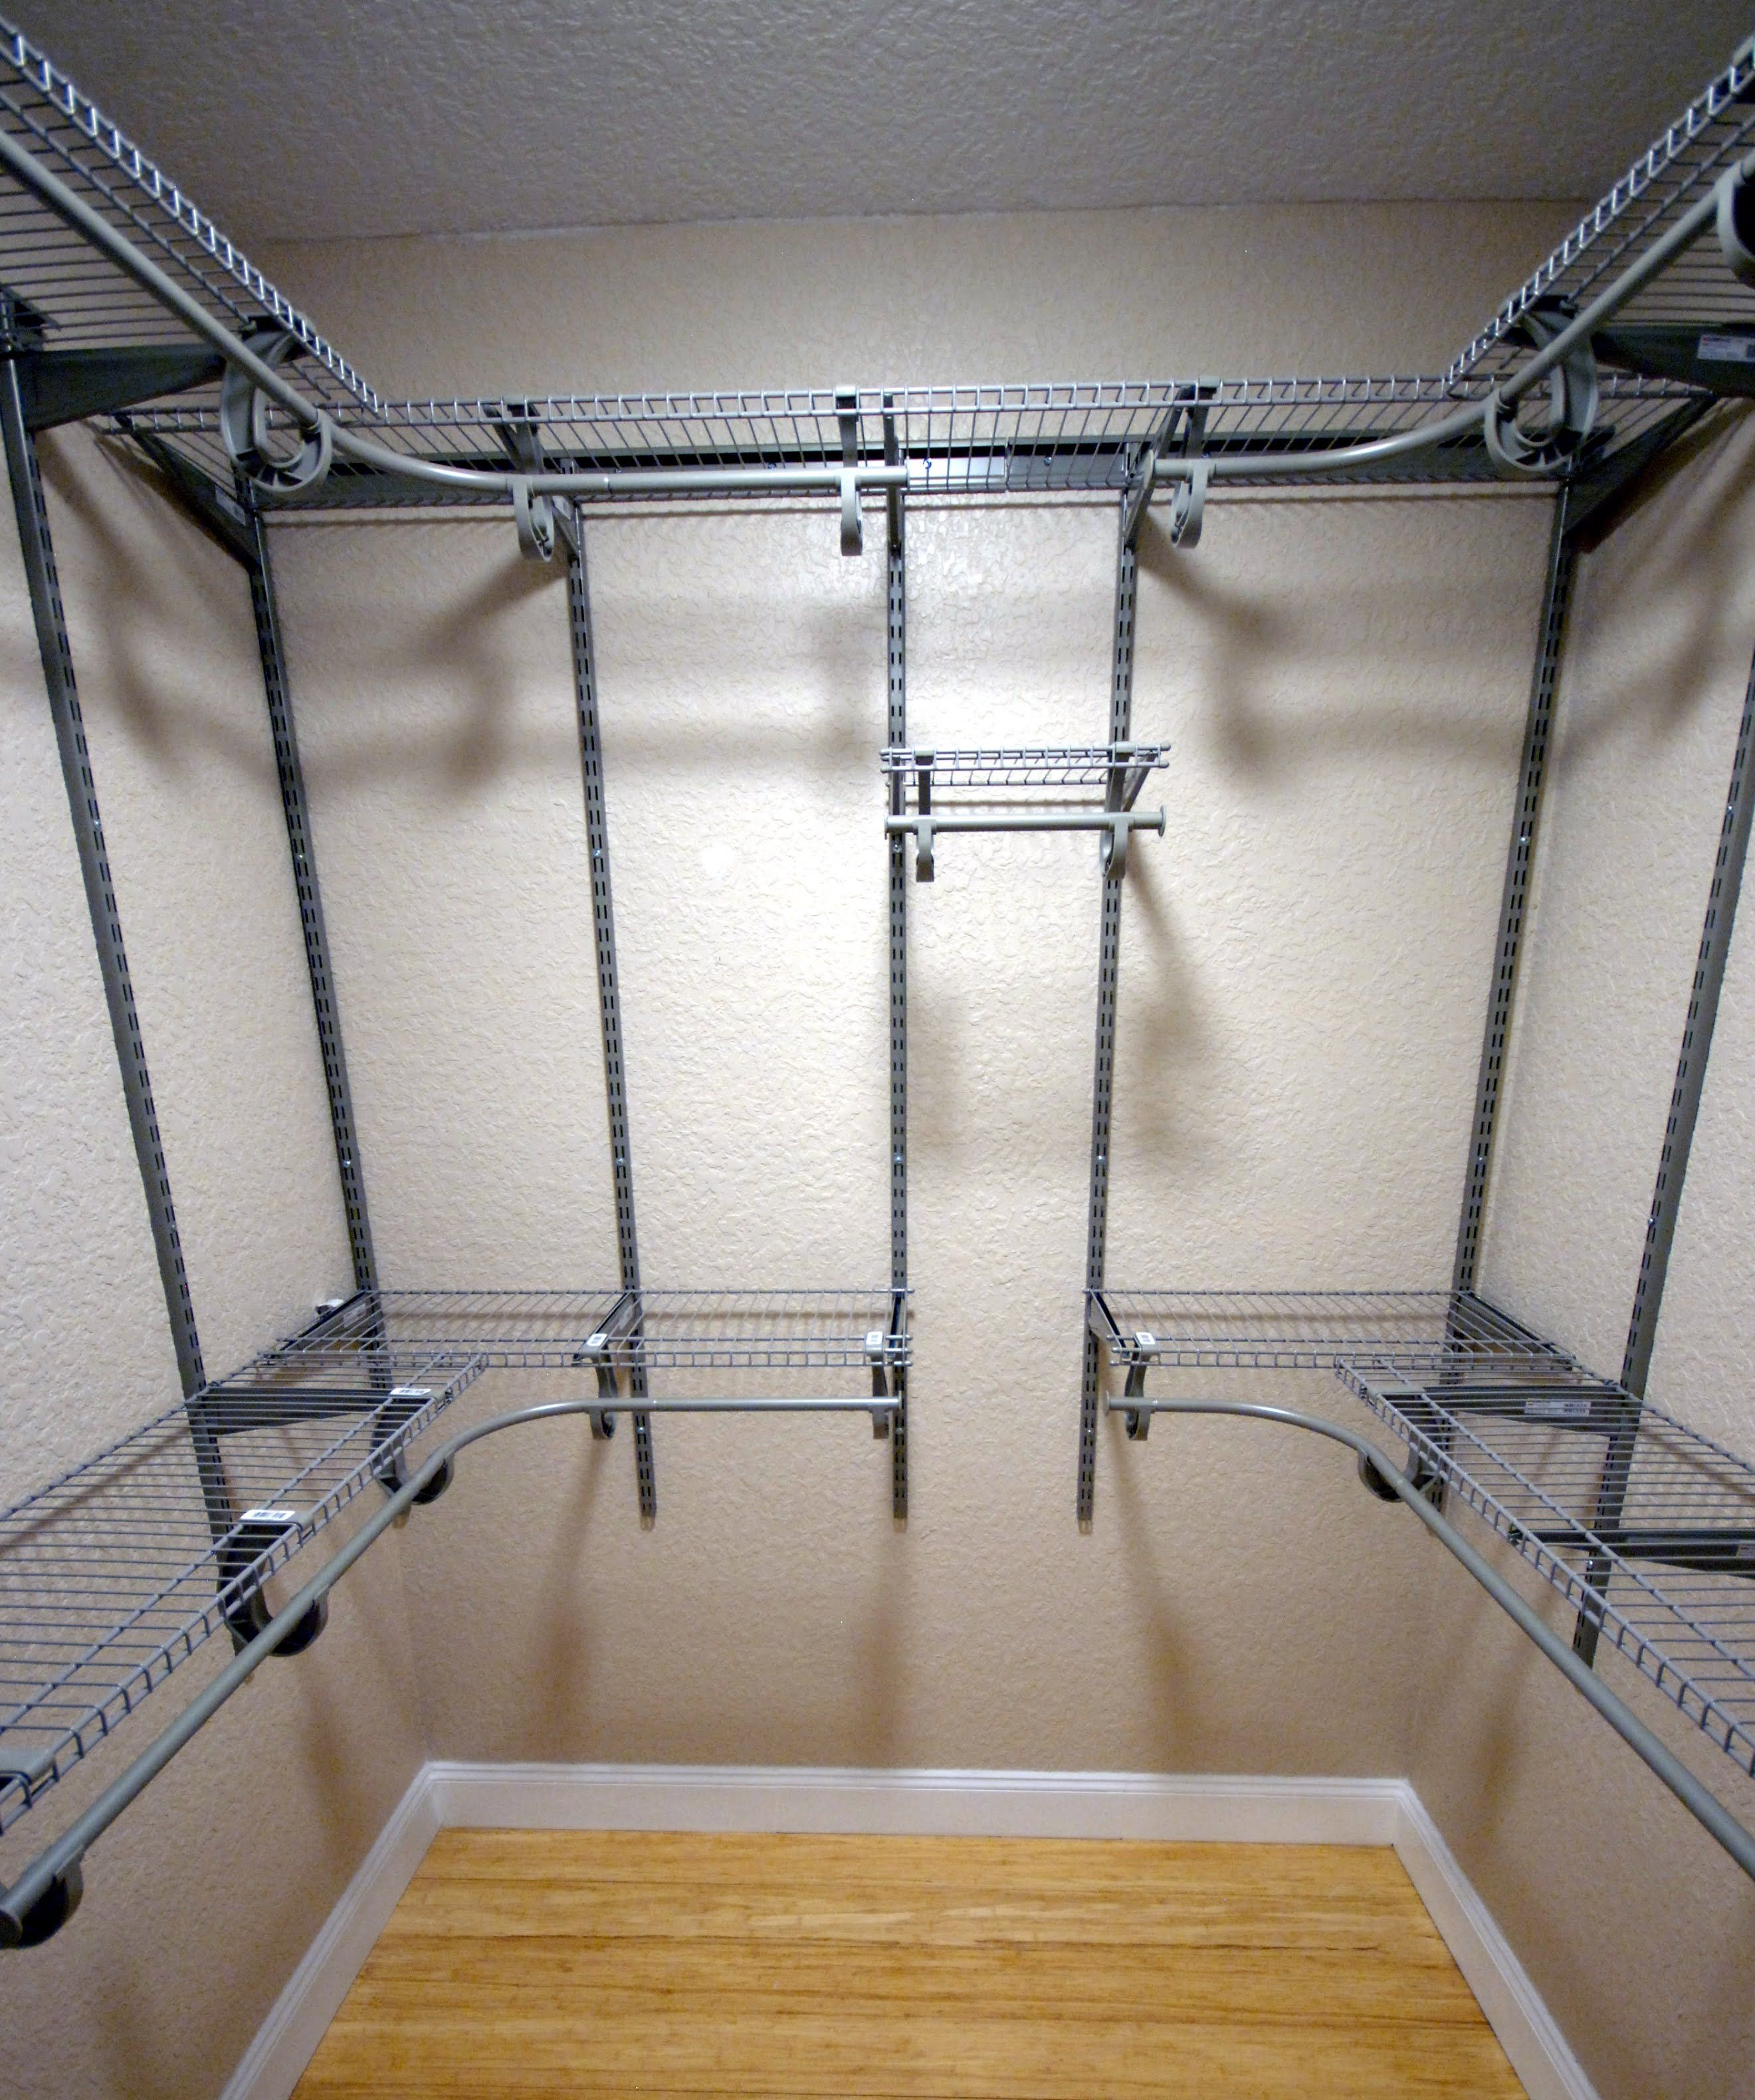 How To Organize Install Master Closet Shelving In Small